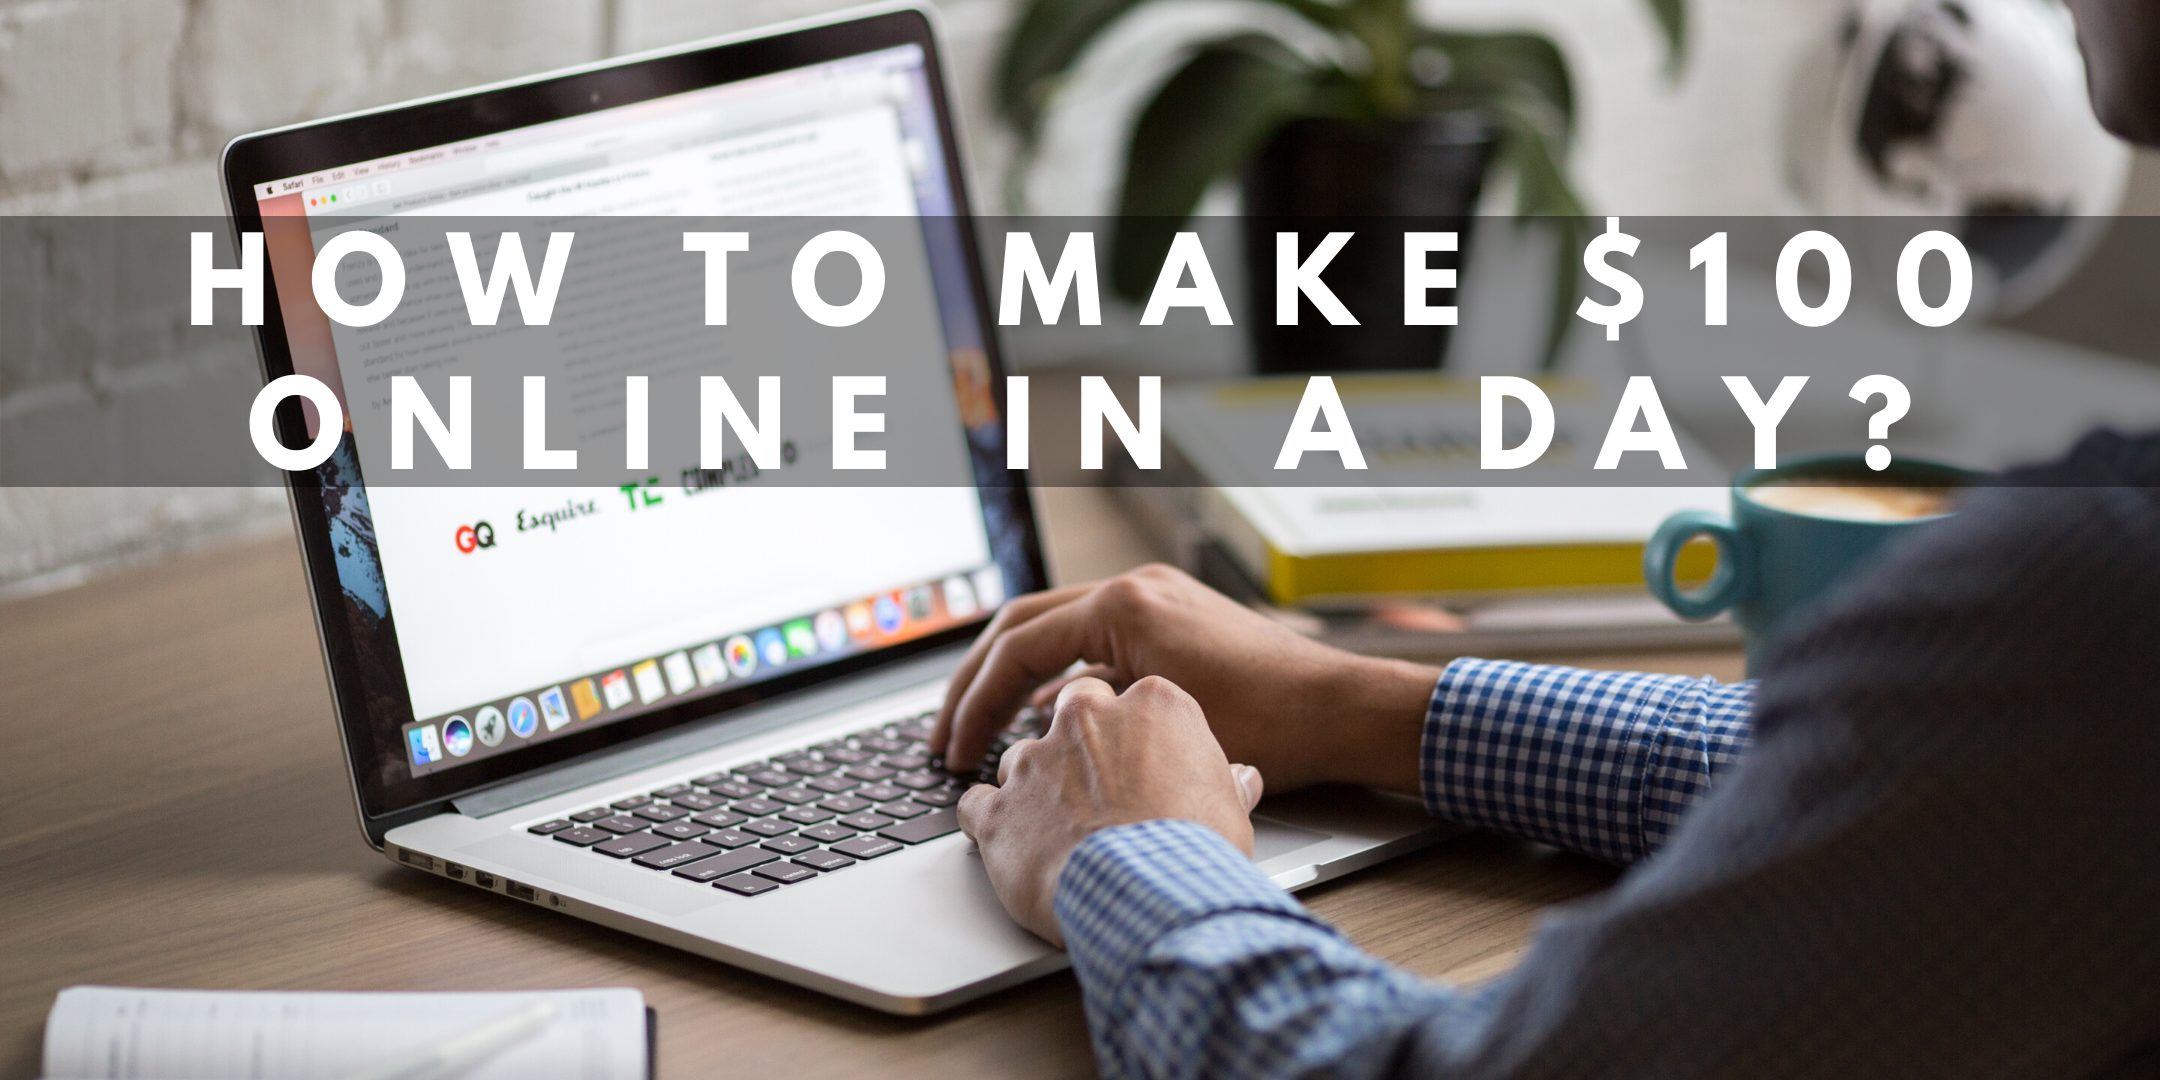 (9pm Session) How To Make $100 Online In A Day?